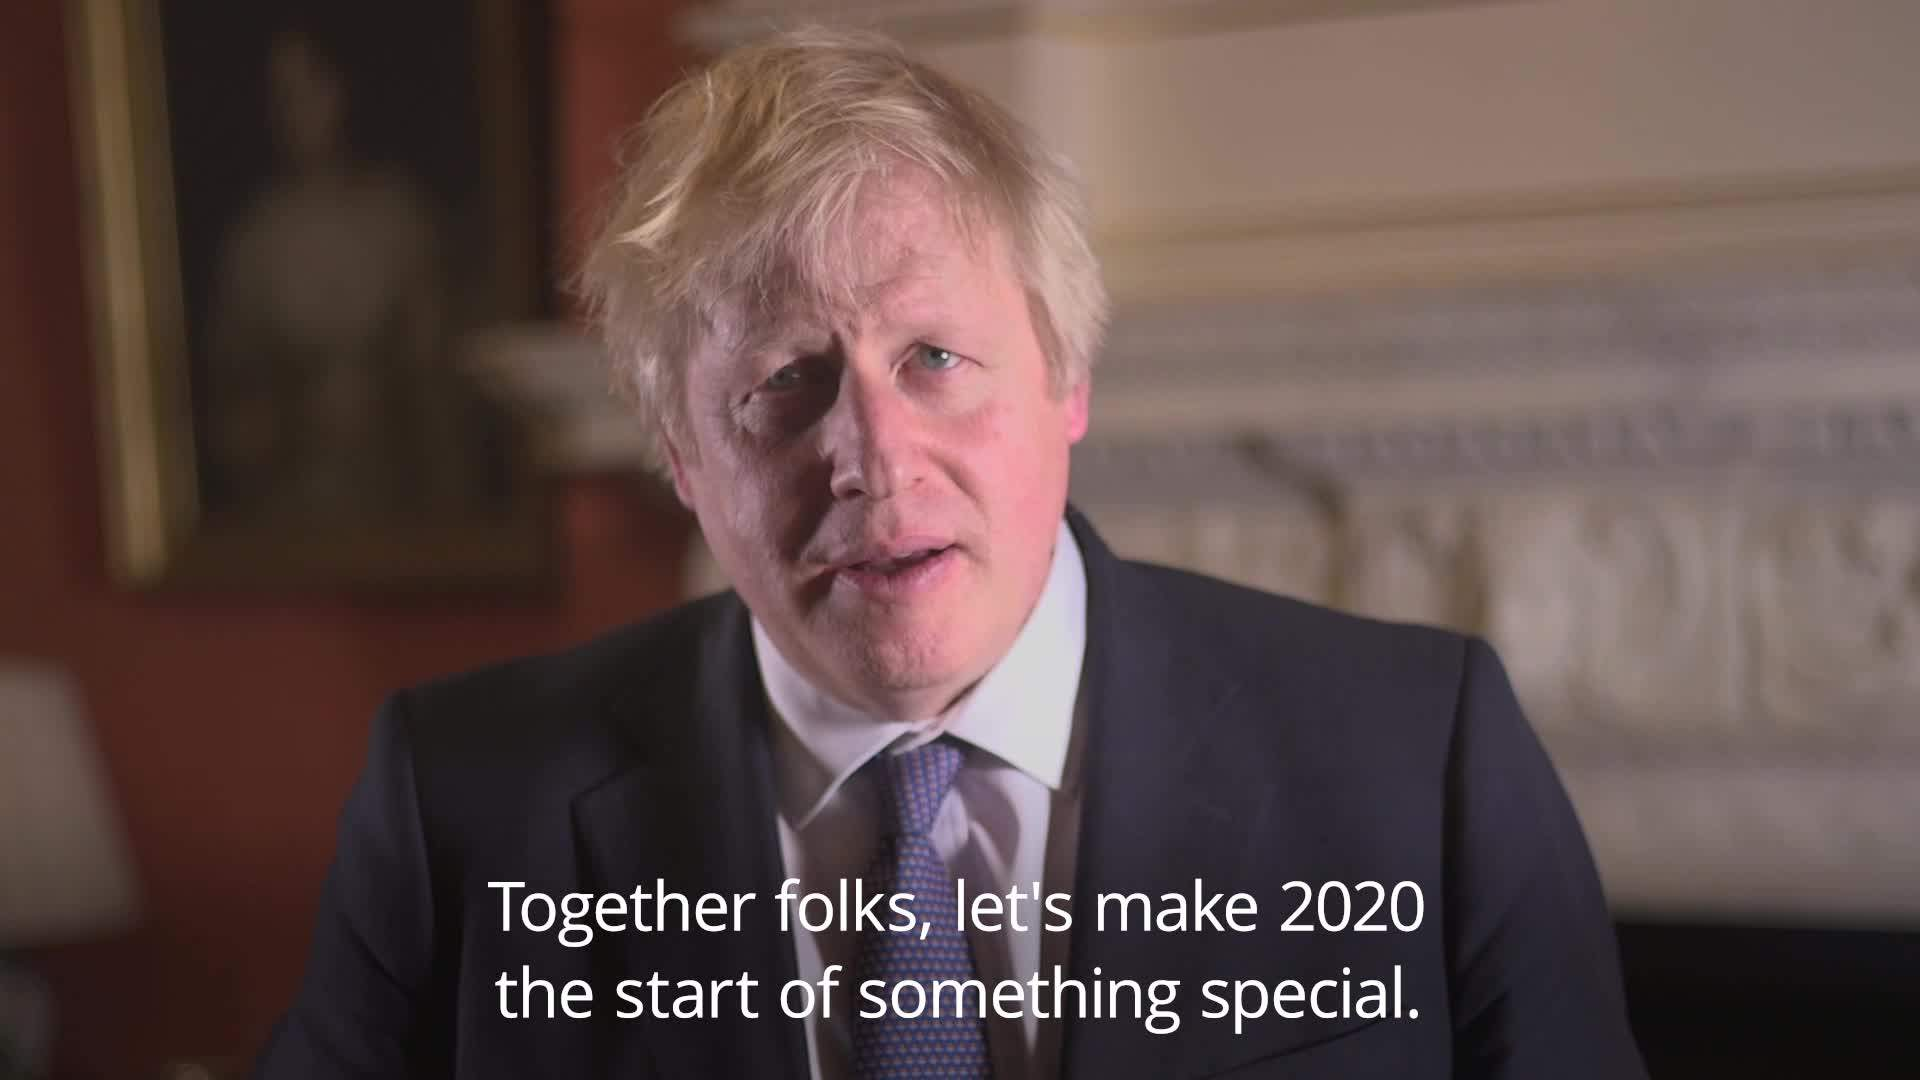 Johnson hails a decade of 'prosperity and opportunity' his New Year message